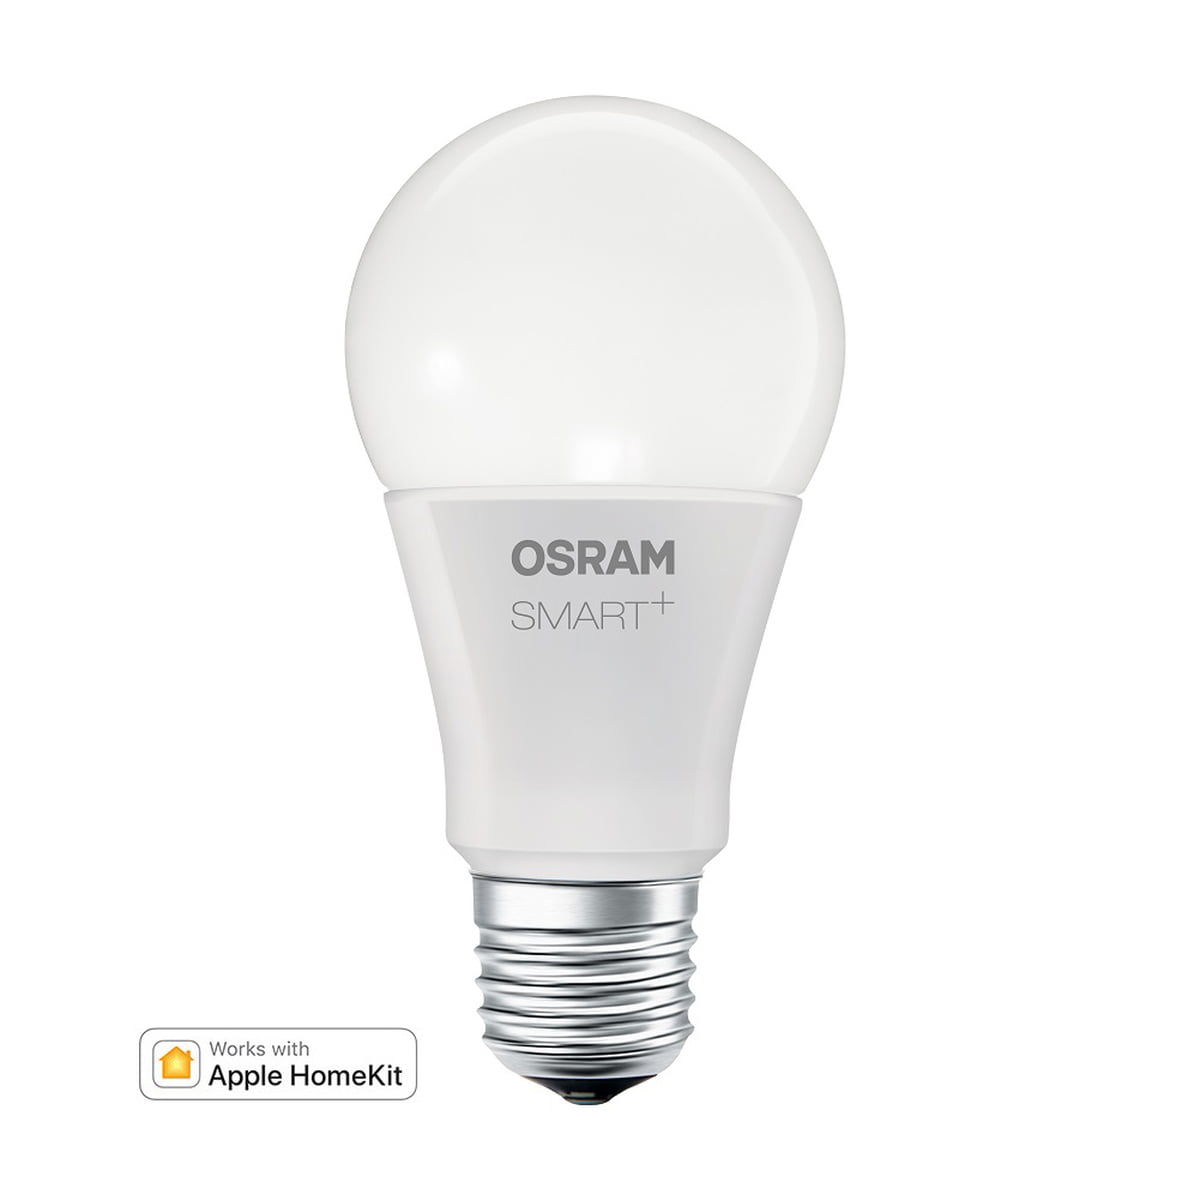 Lampe Osram SmartClassic Apple A60 Pour Home Kit Multicolor Rgbw Led E27 Ajq4L35R